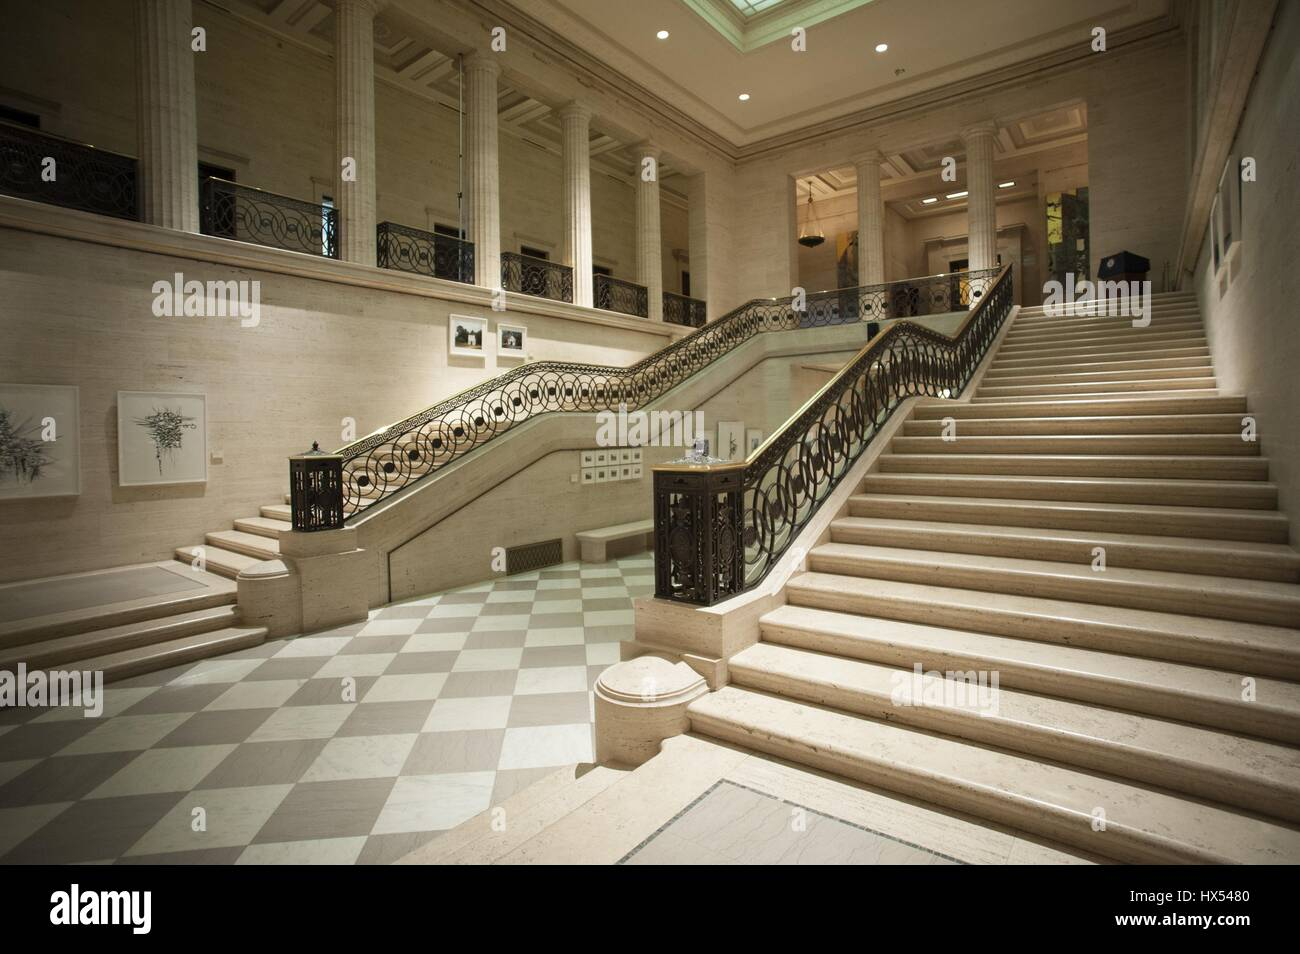 The view from the first floor of the atrium of the Marriner S Eccles Federal Reserve Board Building, Washington - Stock Image